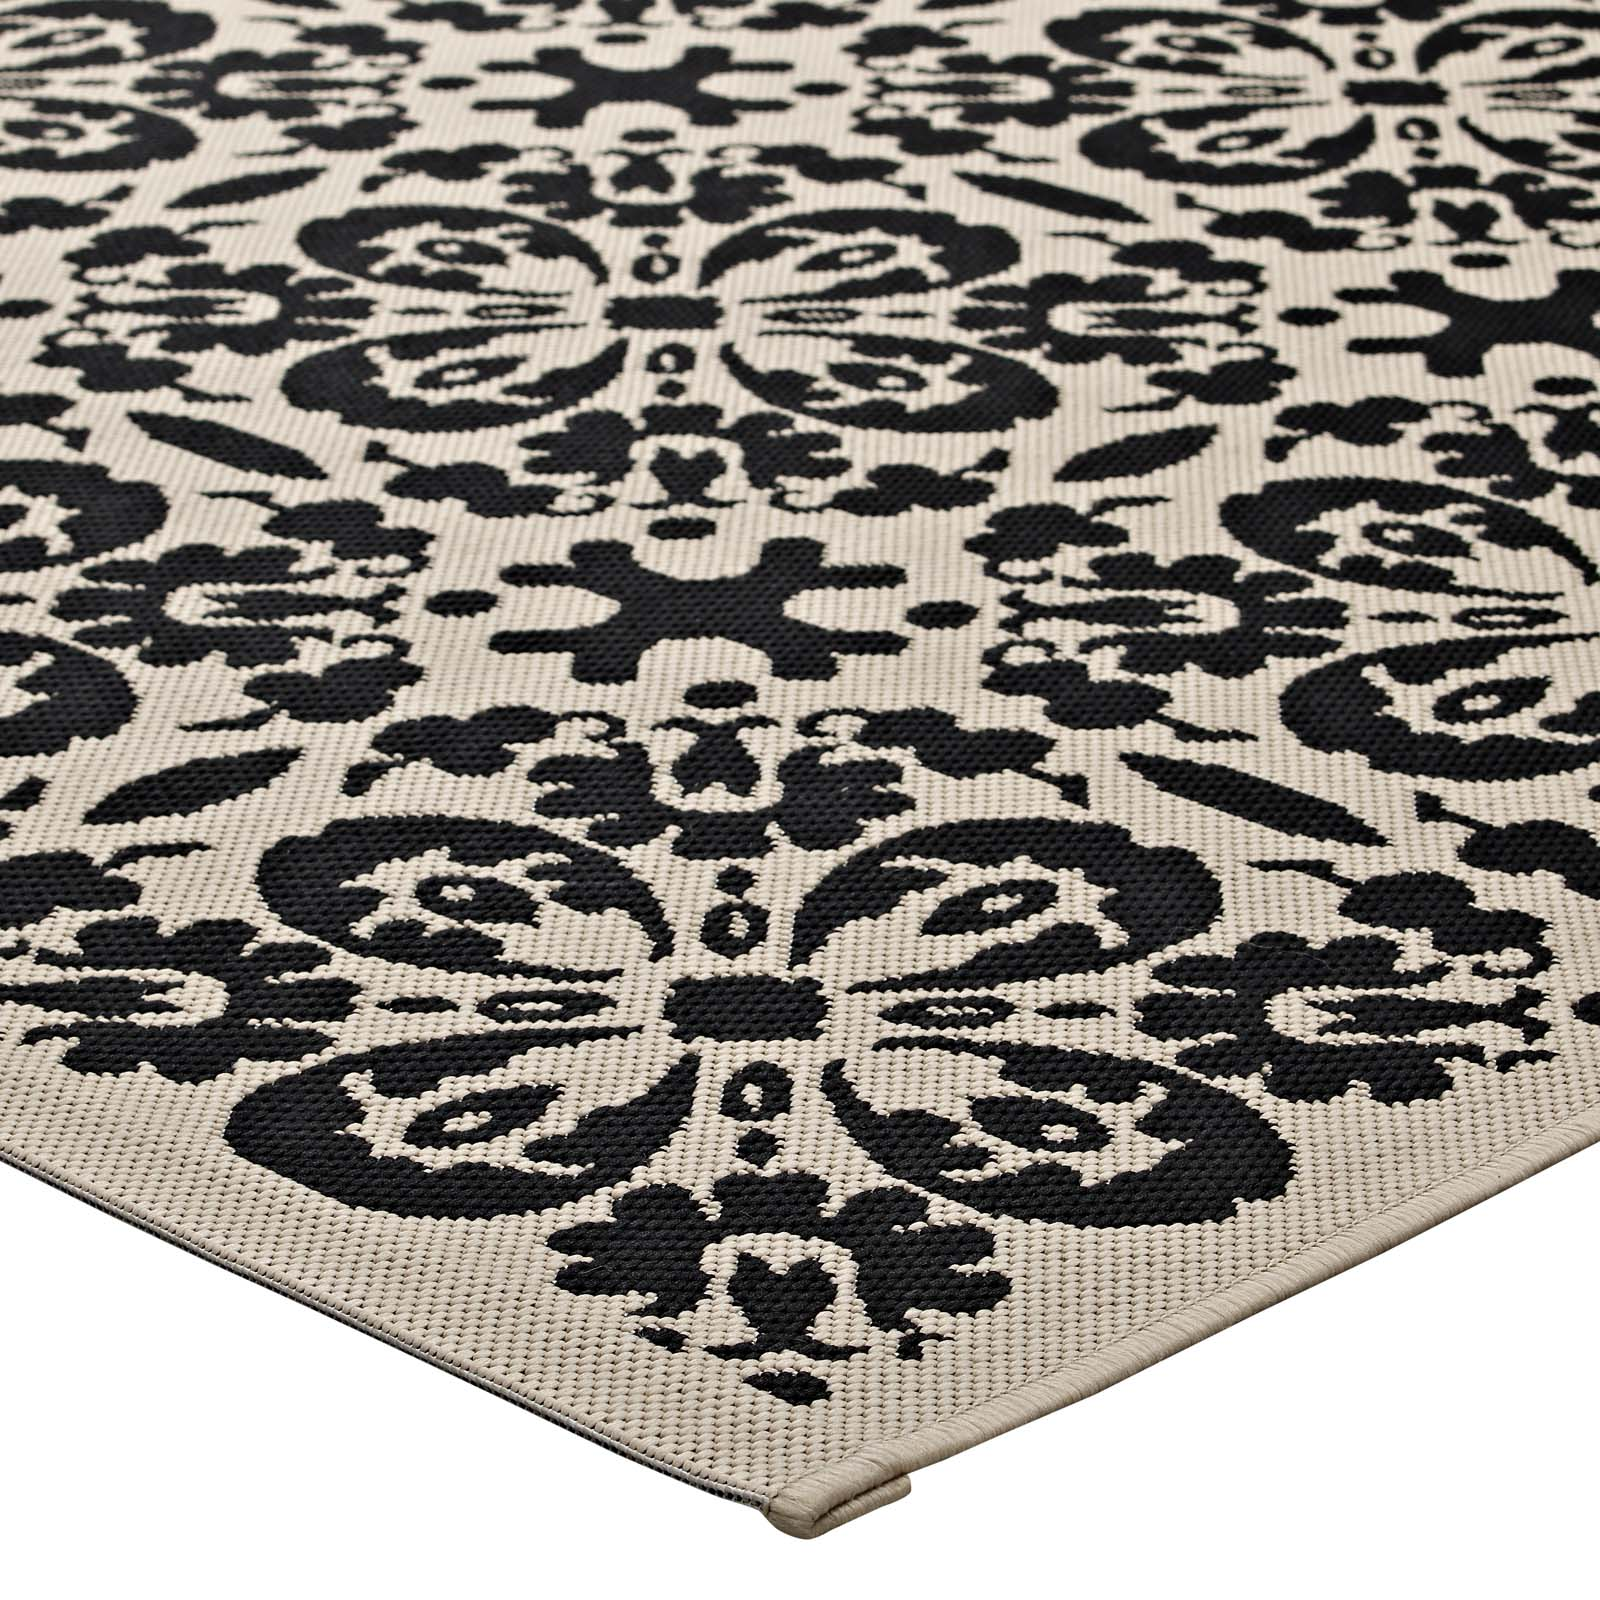 Outdoor 5x8 Area Rug: Modway Rugs On Sale. R-1142A-58 Ariana Vintage Floral